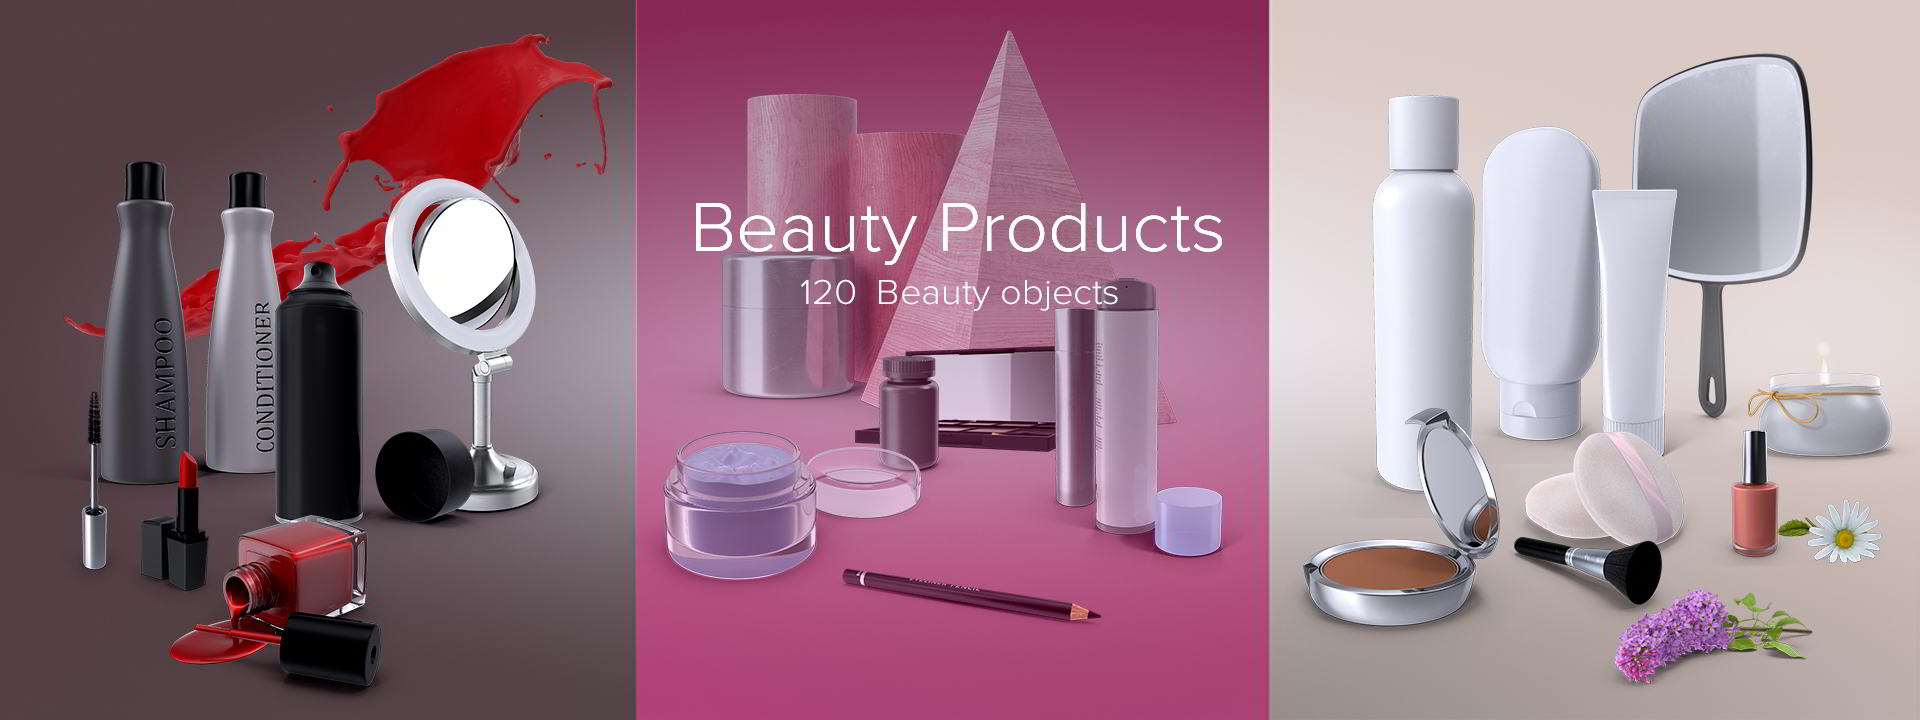 PixelSquid – Beauty Products Collection free download